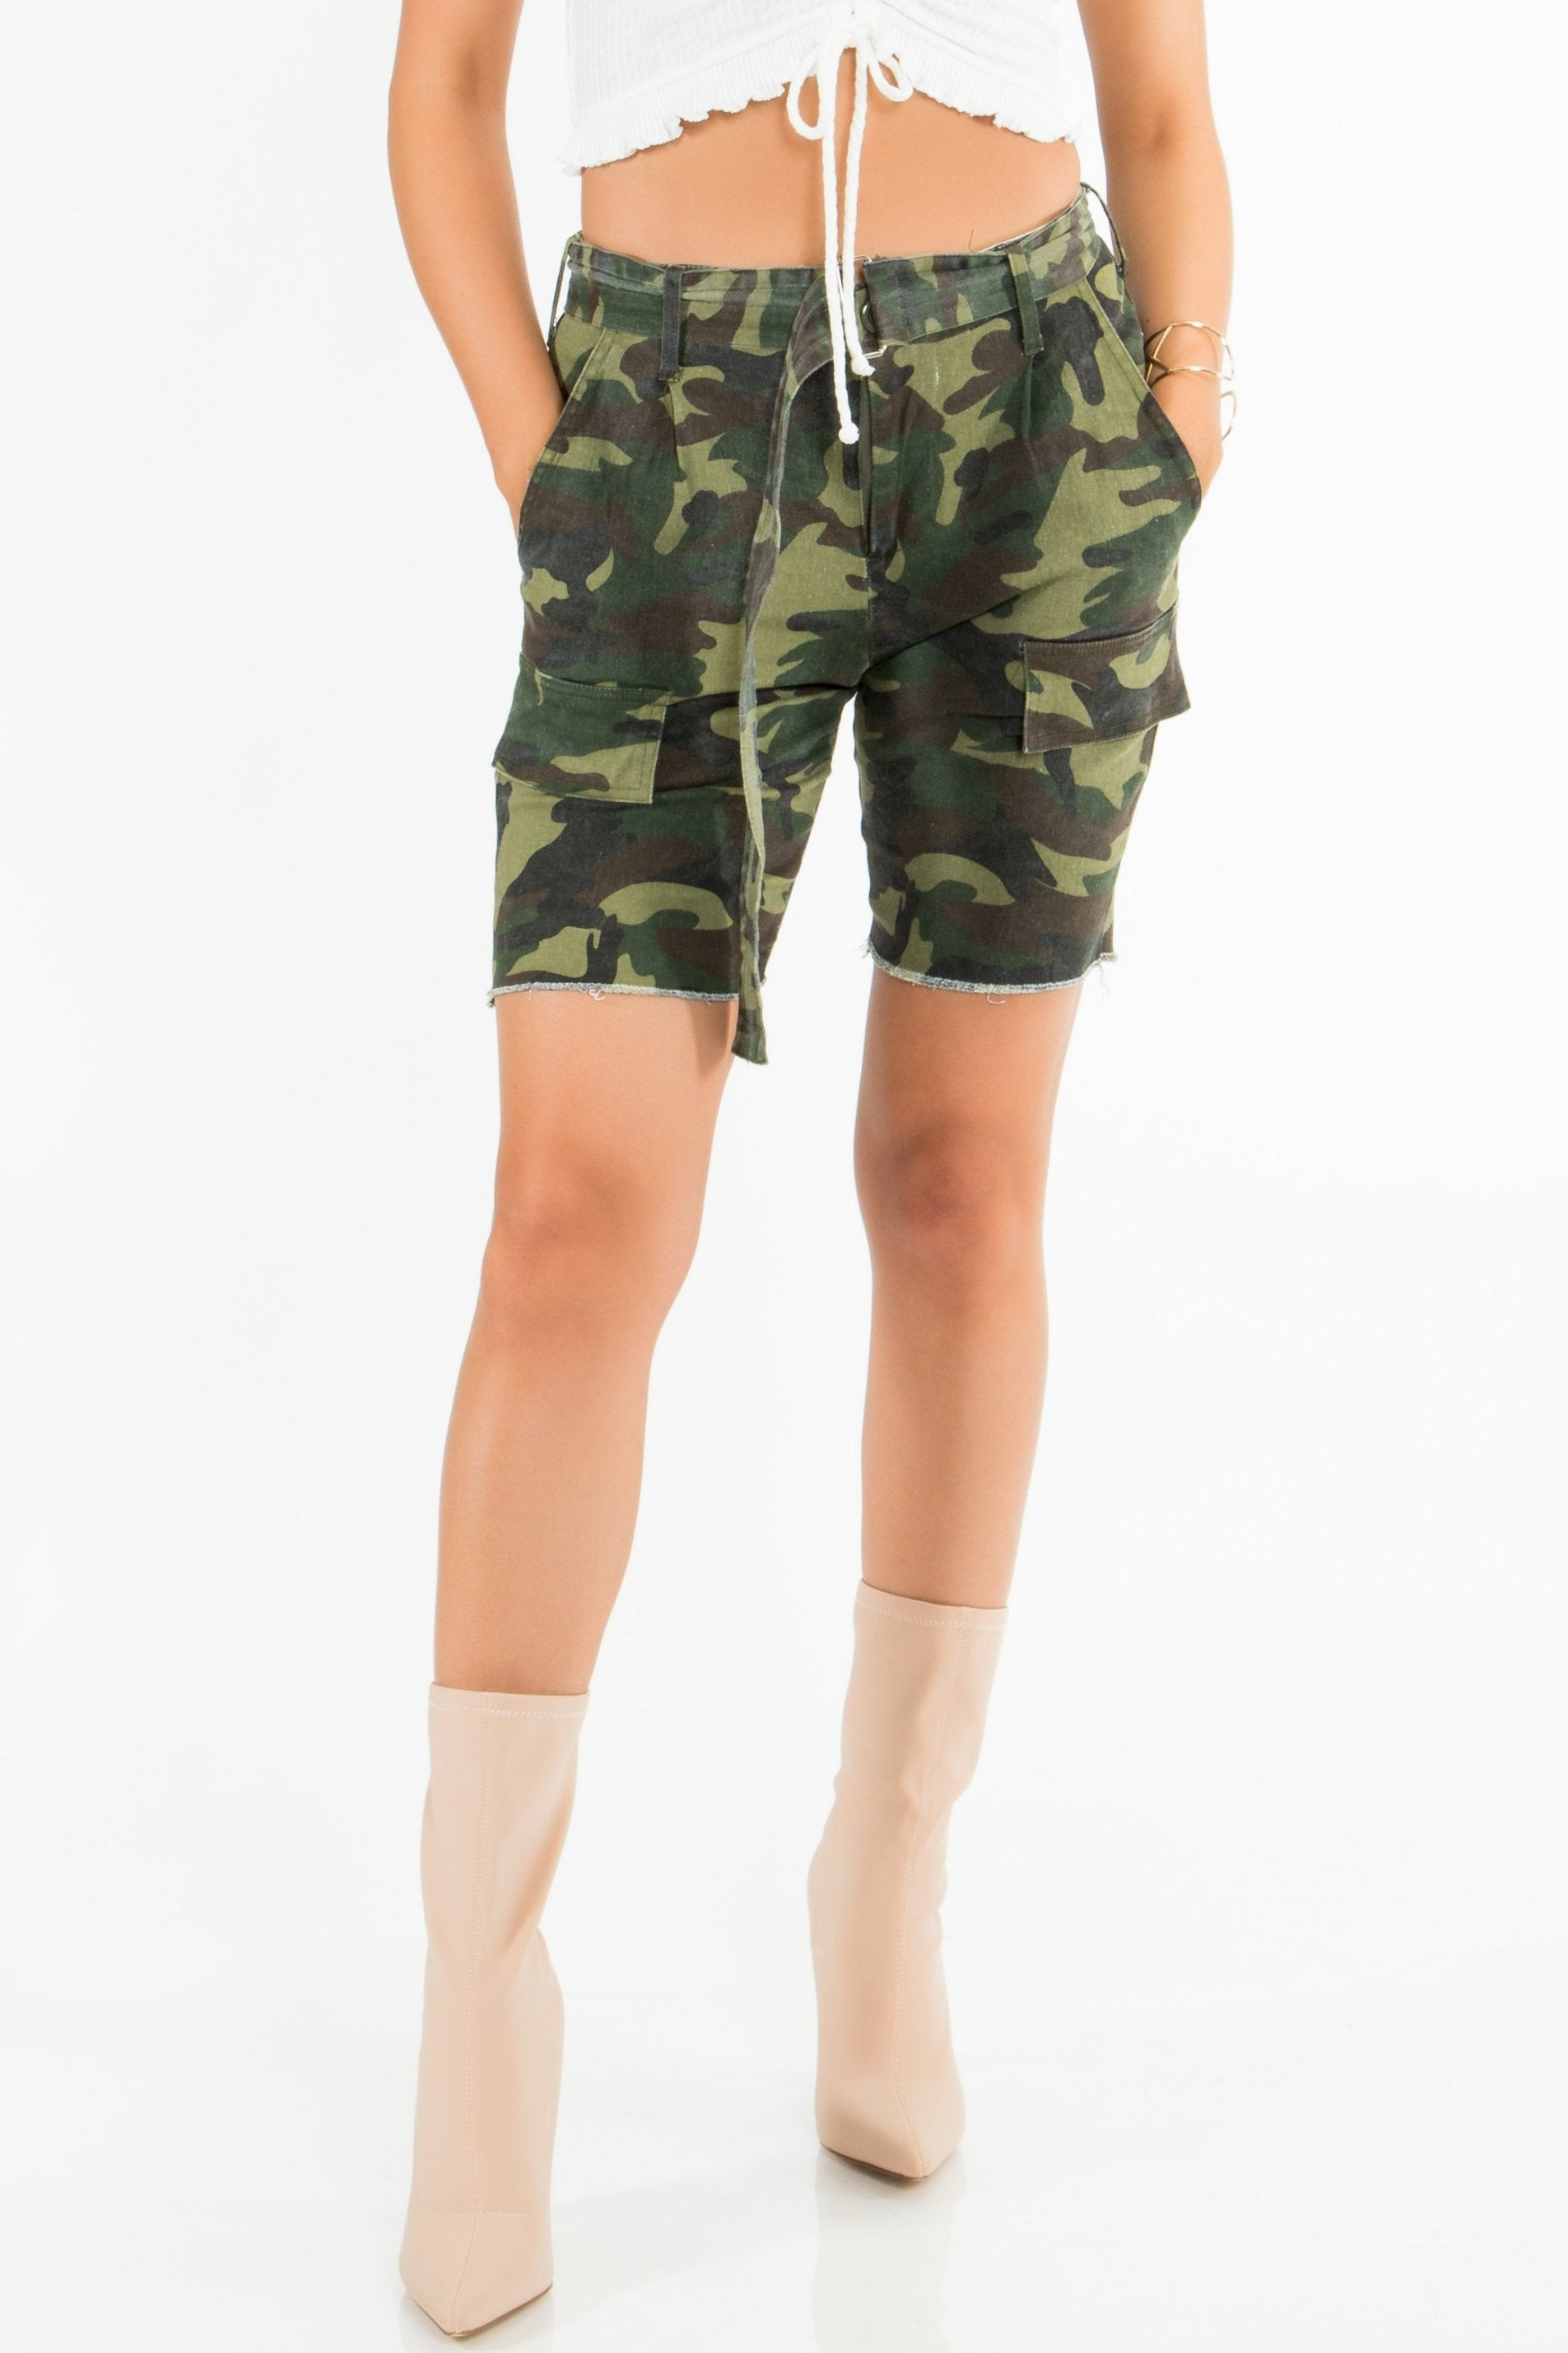 Candy Army Cut-Off Shorts